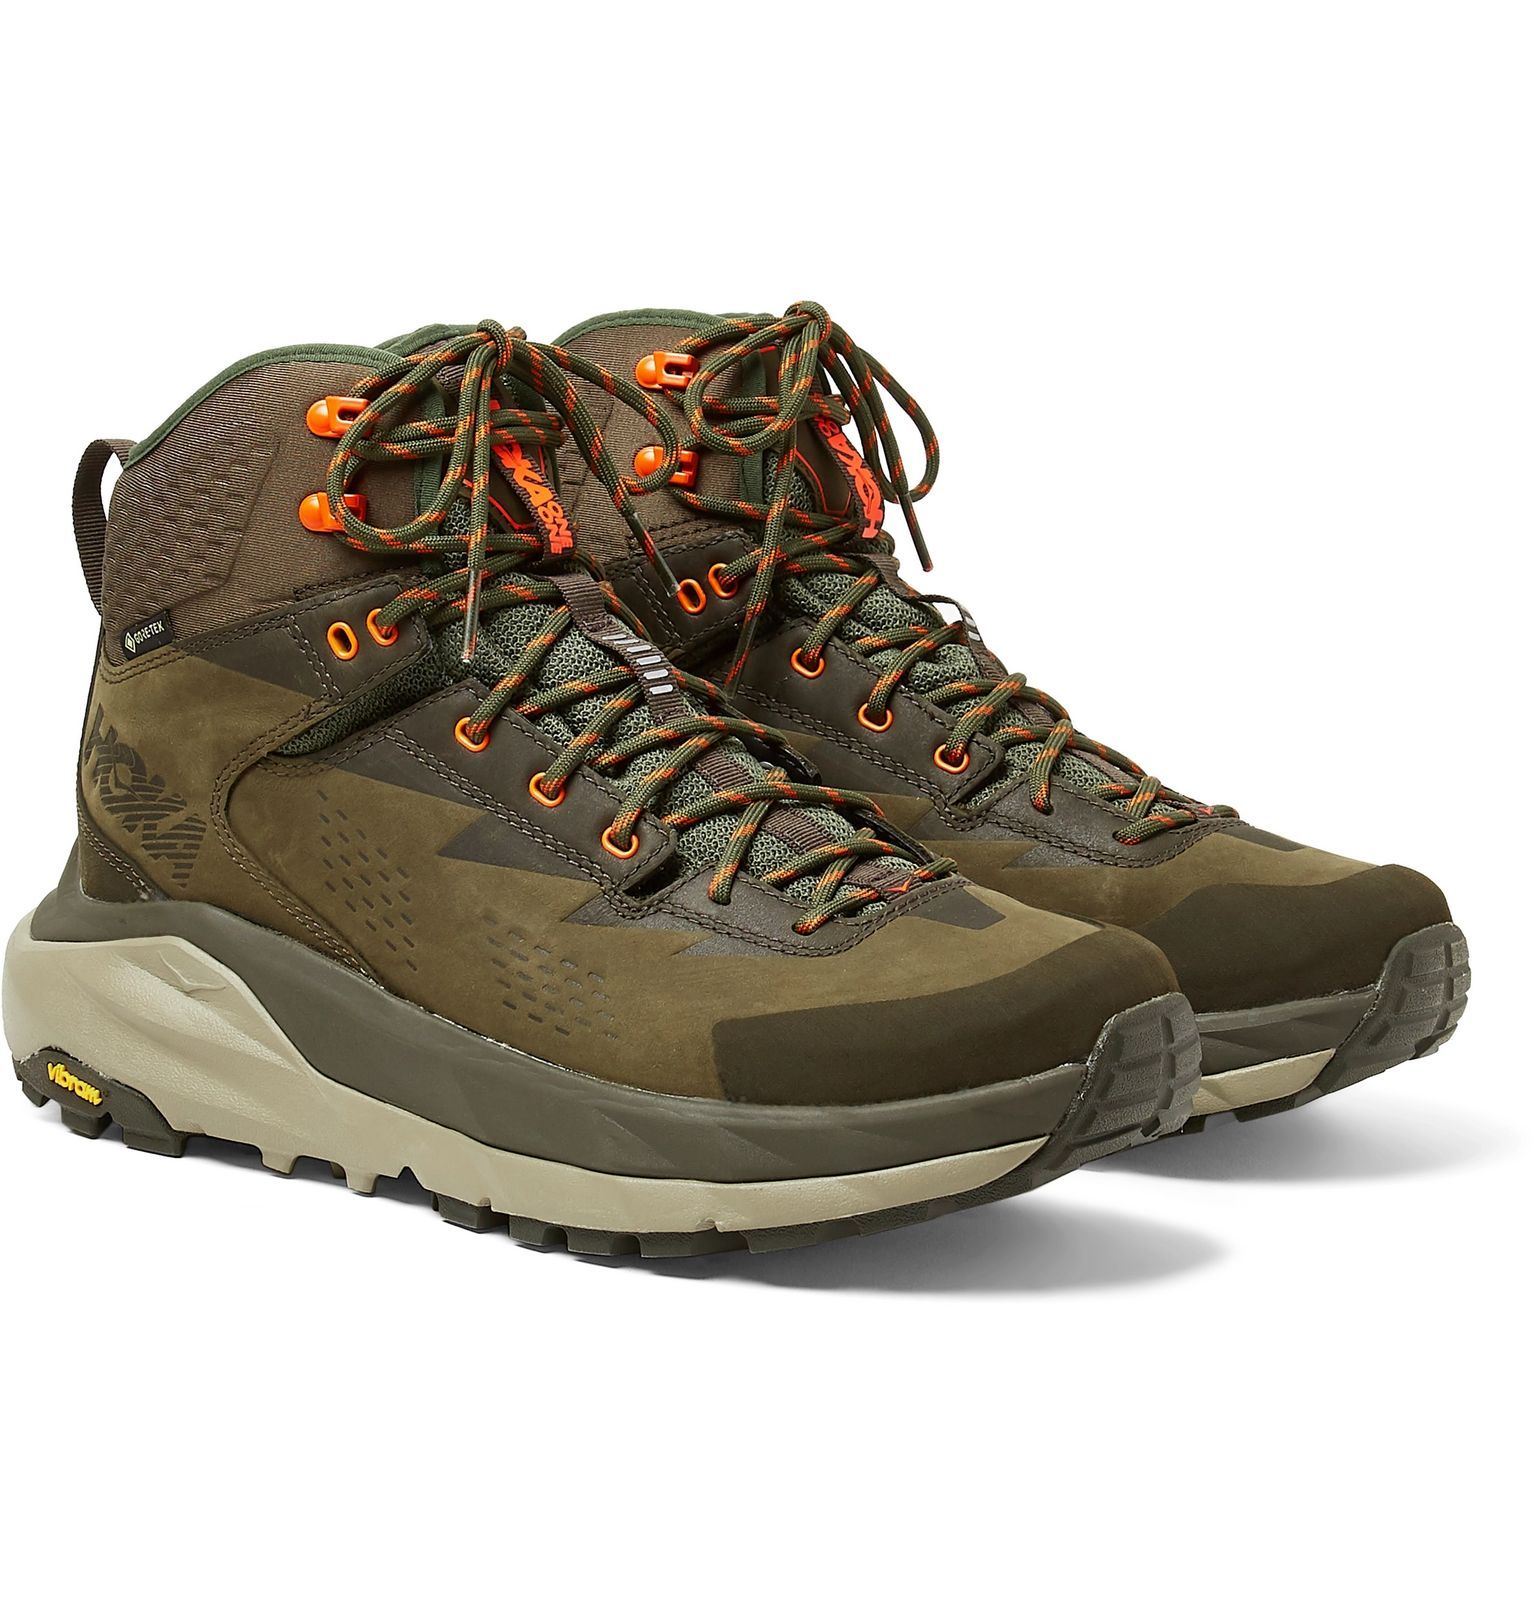 Army green Kaha GORE-TEX and Leather